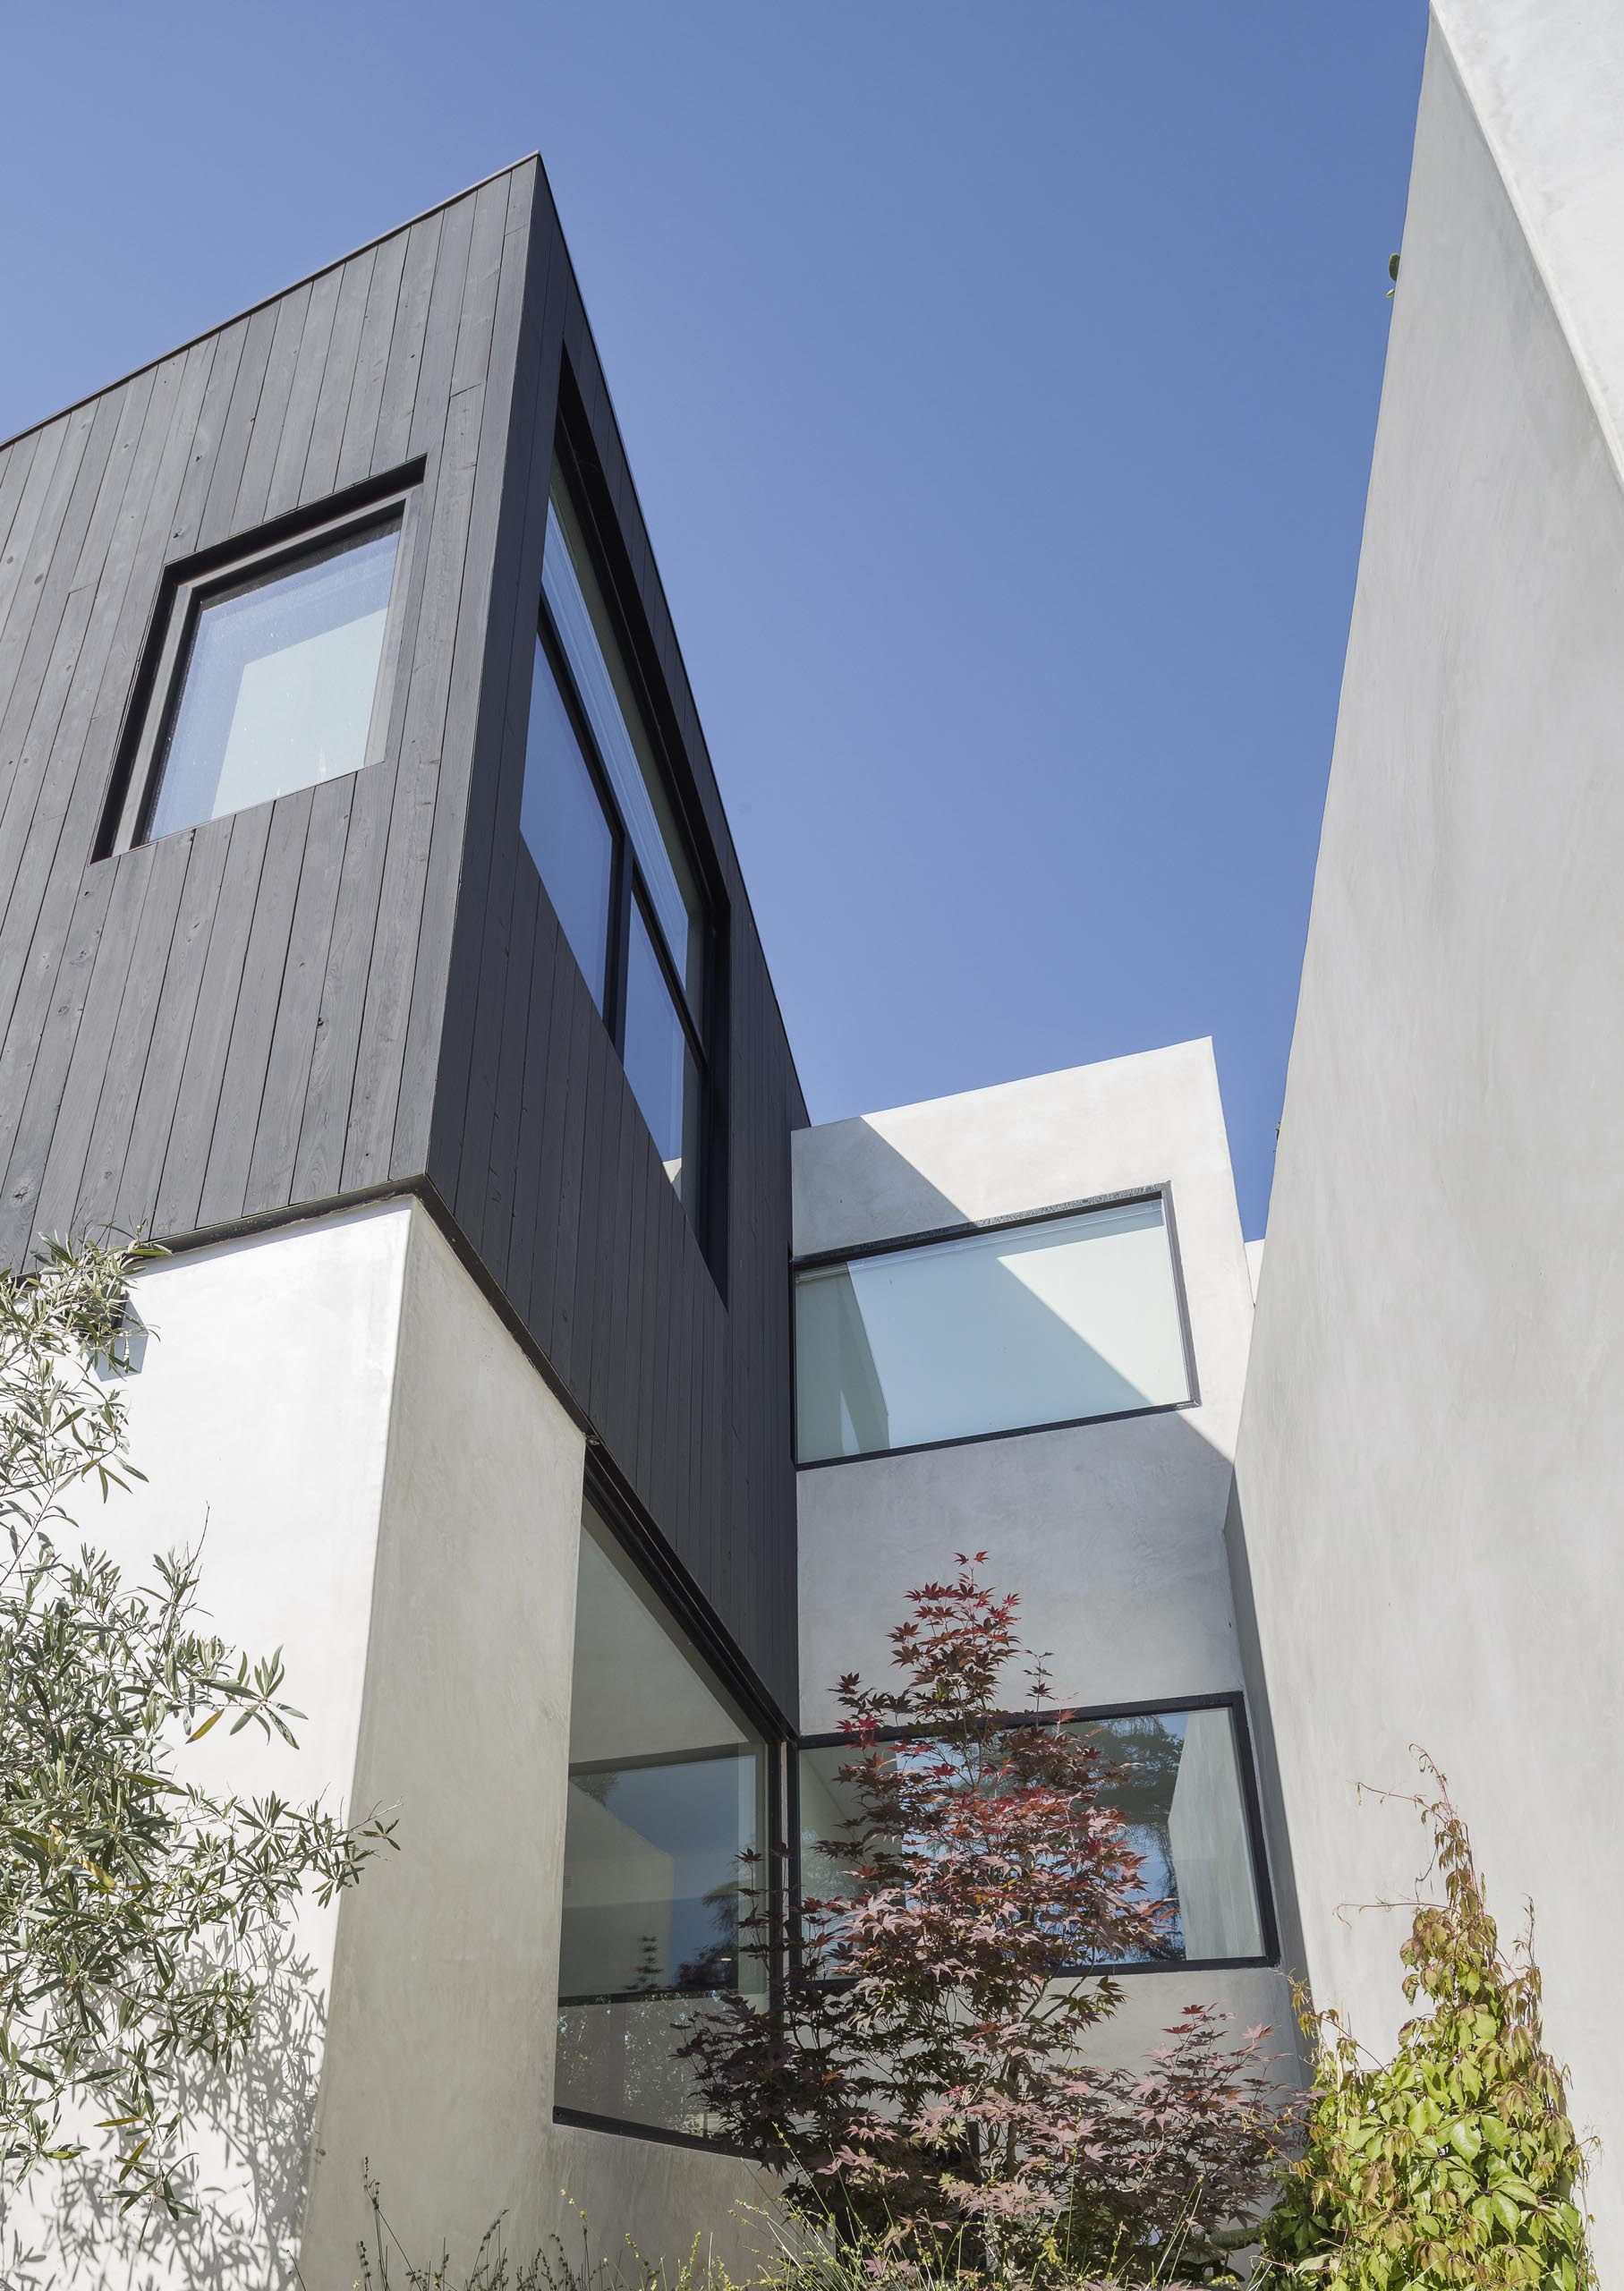 A modern home with Shou Sugi Ban charred cypress wood and a smooth exterior plaster.